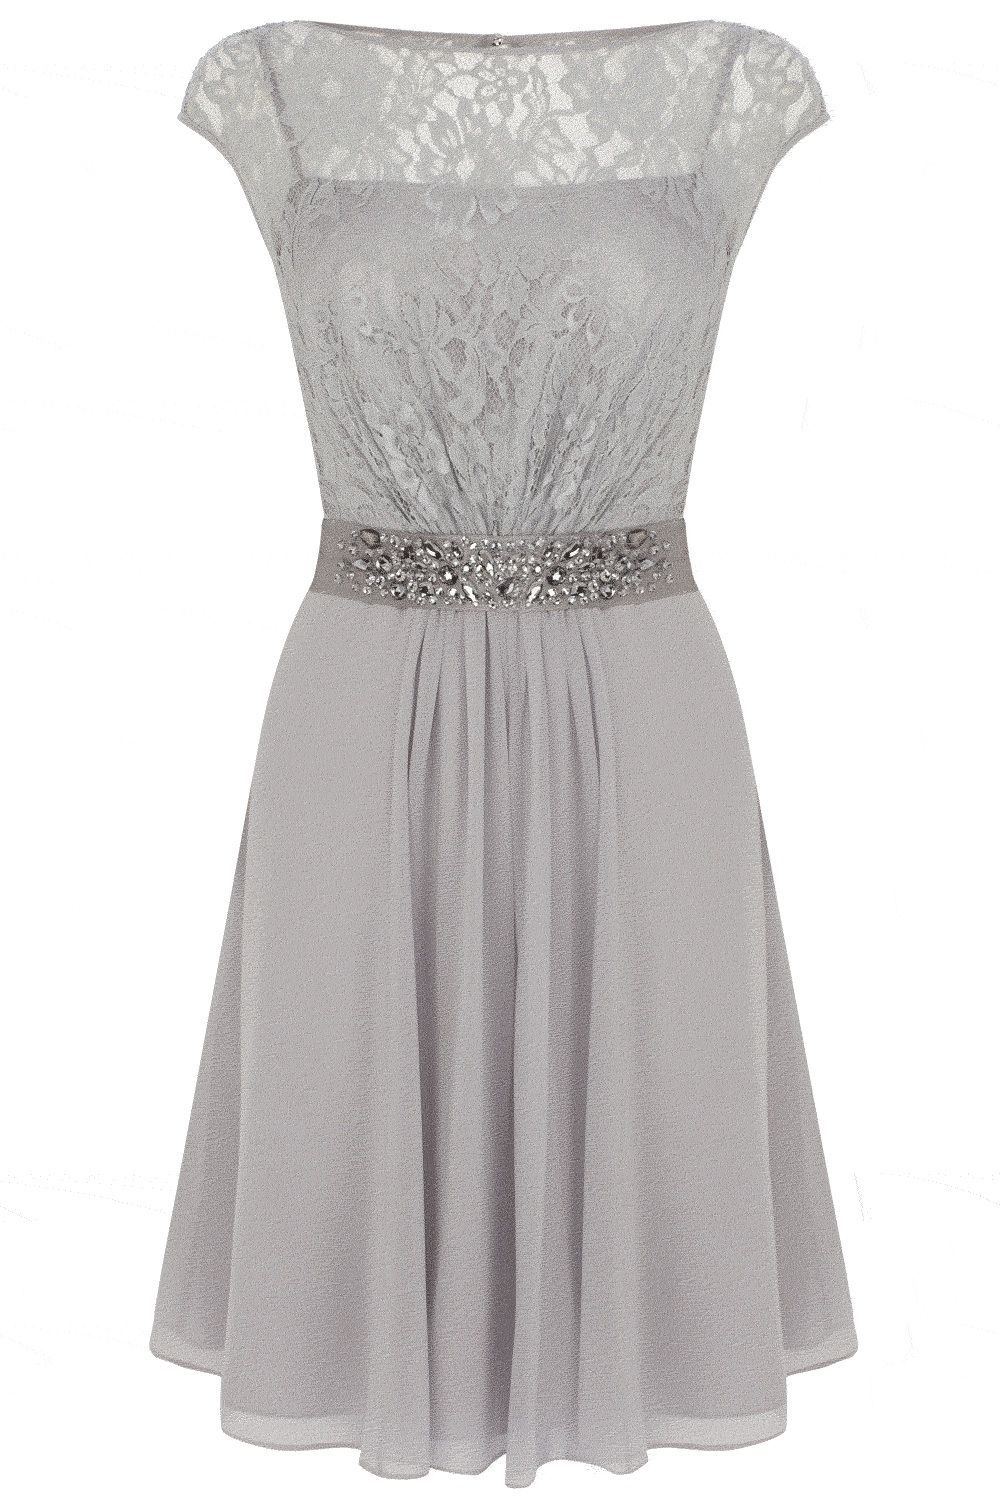 Gray dress for wedding party  Beauty Tips Celebrity Style and Fashion Advice from  Pinterest